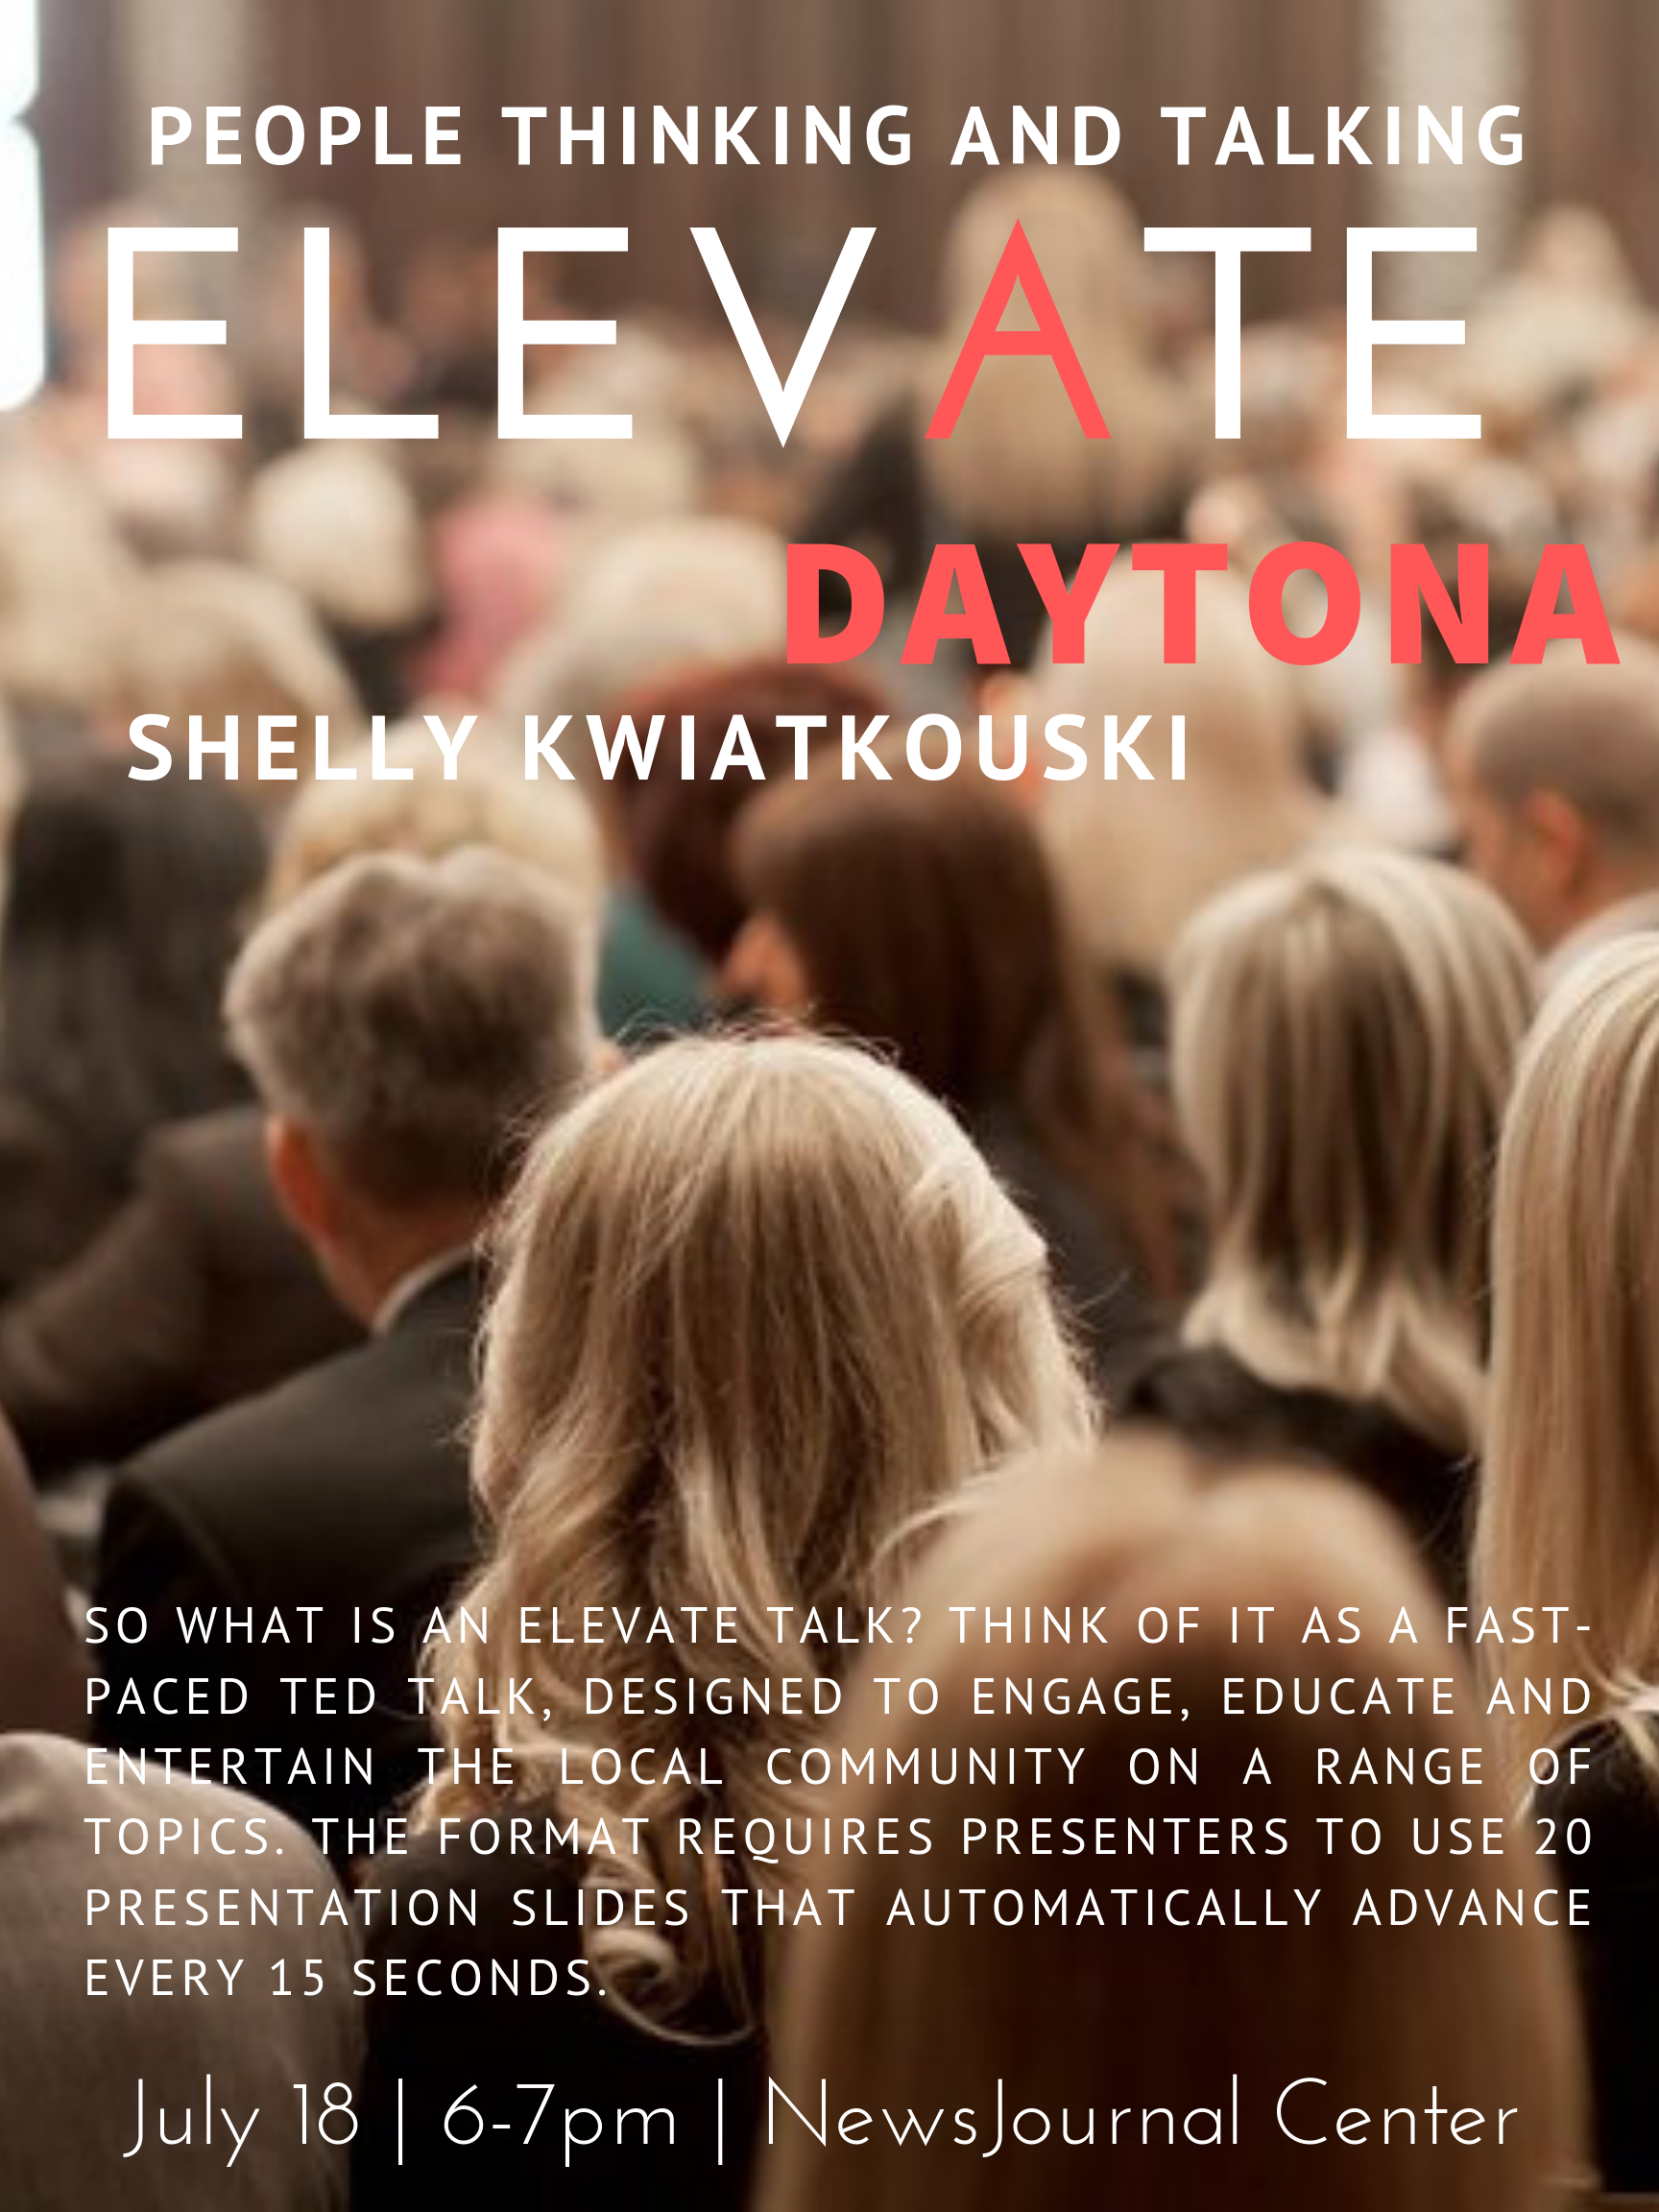 elevate-daytona-beach-shelly-kwiatkouski.png